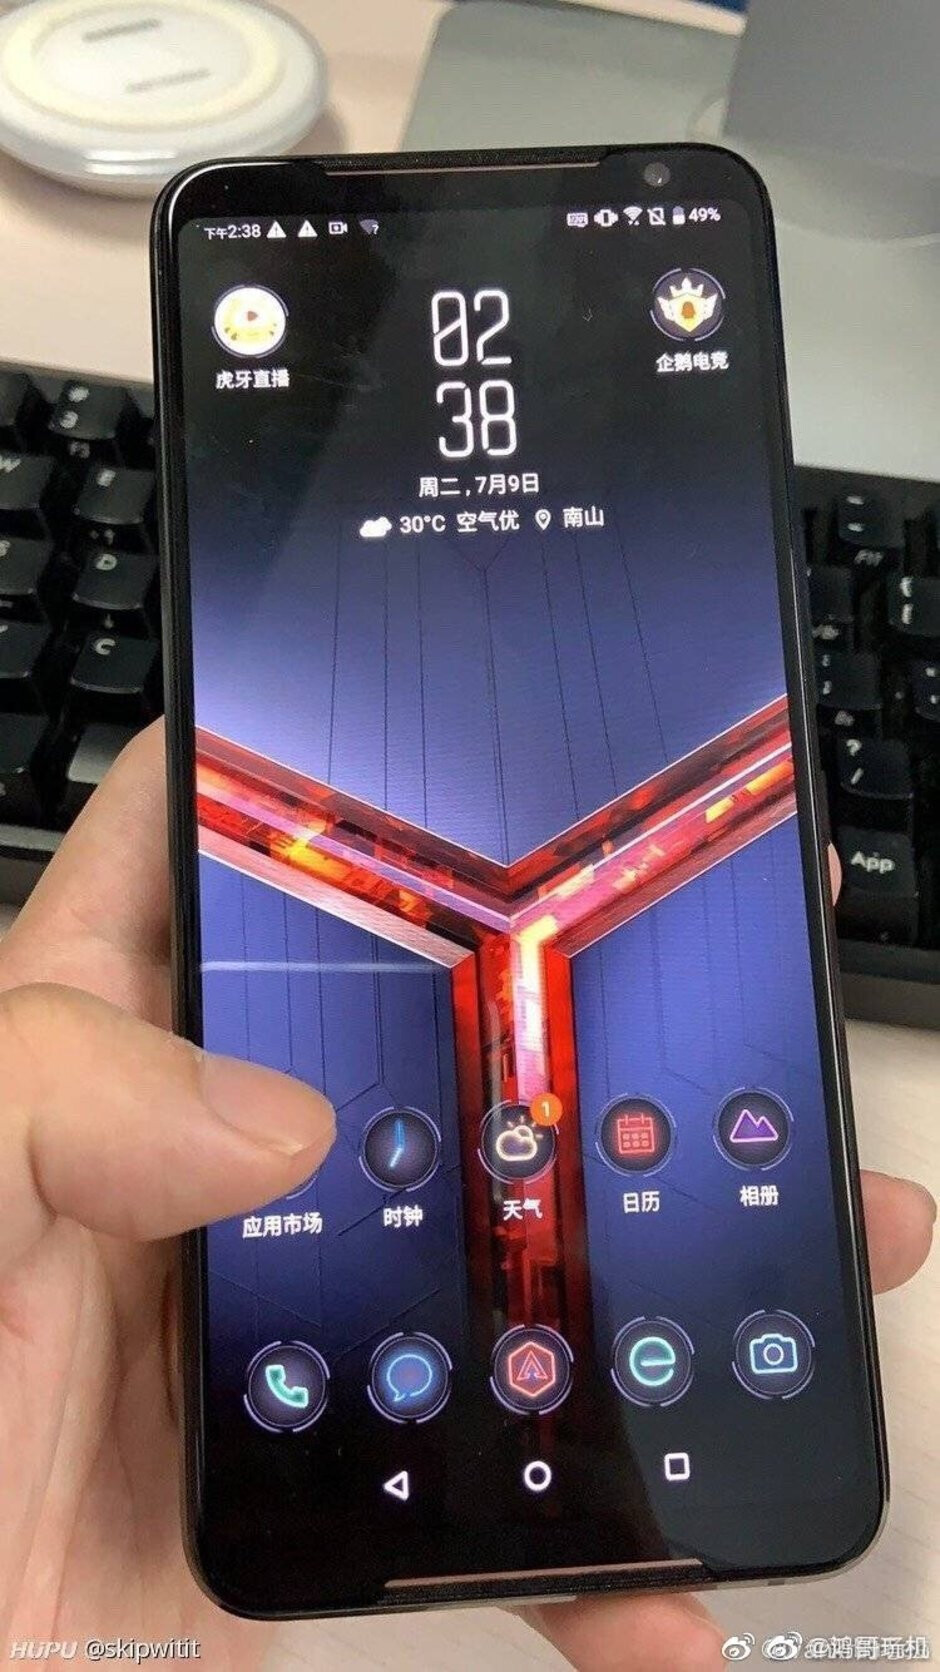 Leaked photos allegedly showing the Asus ROG Phone II - Asus ROG Phone II real-world images leak out